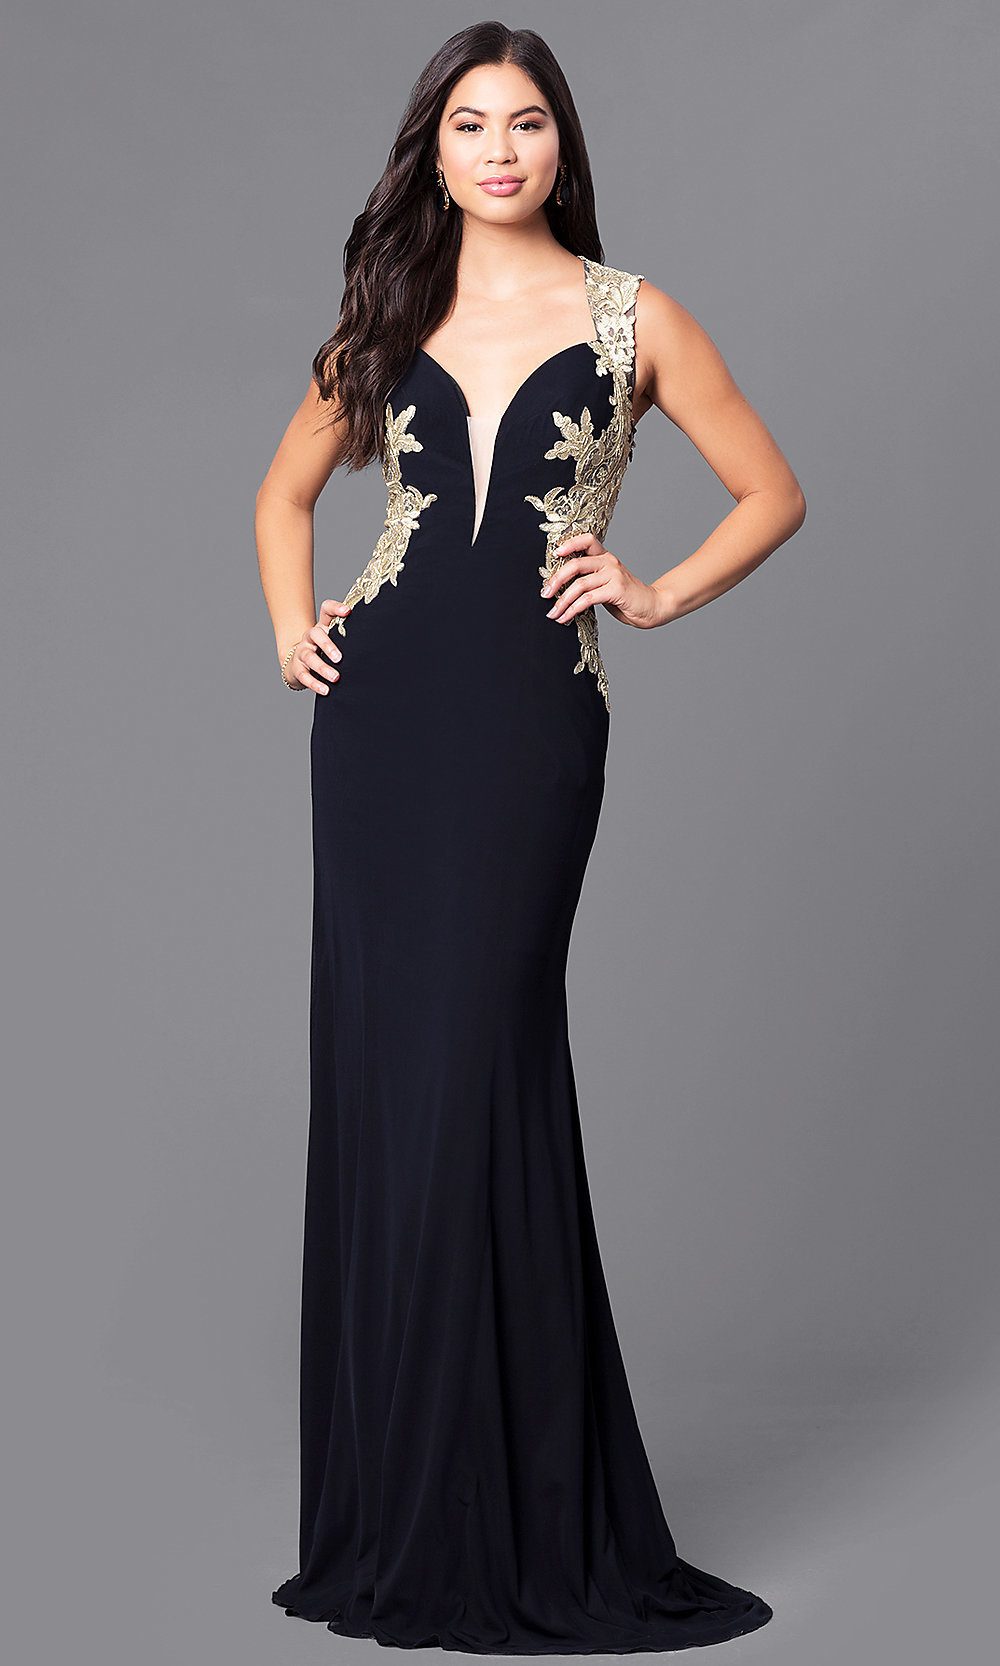 Prom Girl Store locator Prom Girl store locator displays list of stores in neighborhood, cities, states and countries. Database of Prom Girl stores, factory stores and the easiest way to find Prom Girl store locations, map, shopping hours and information about brand.